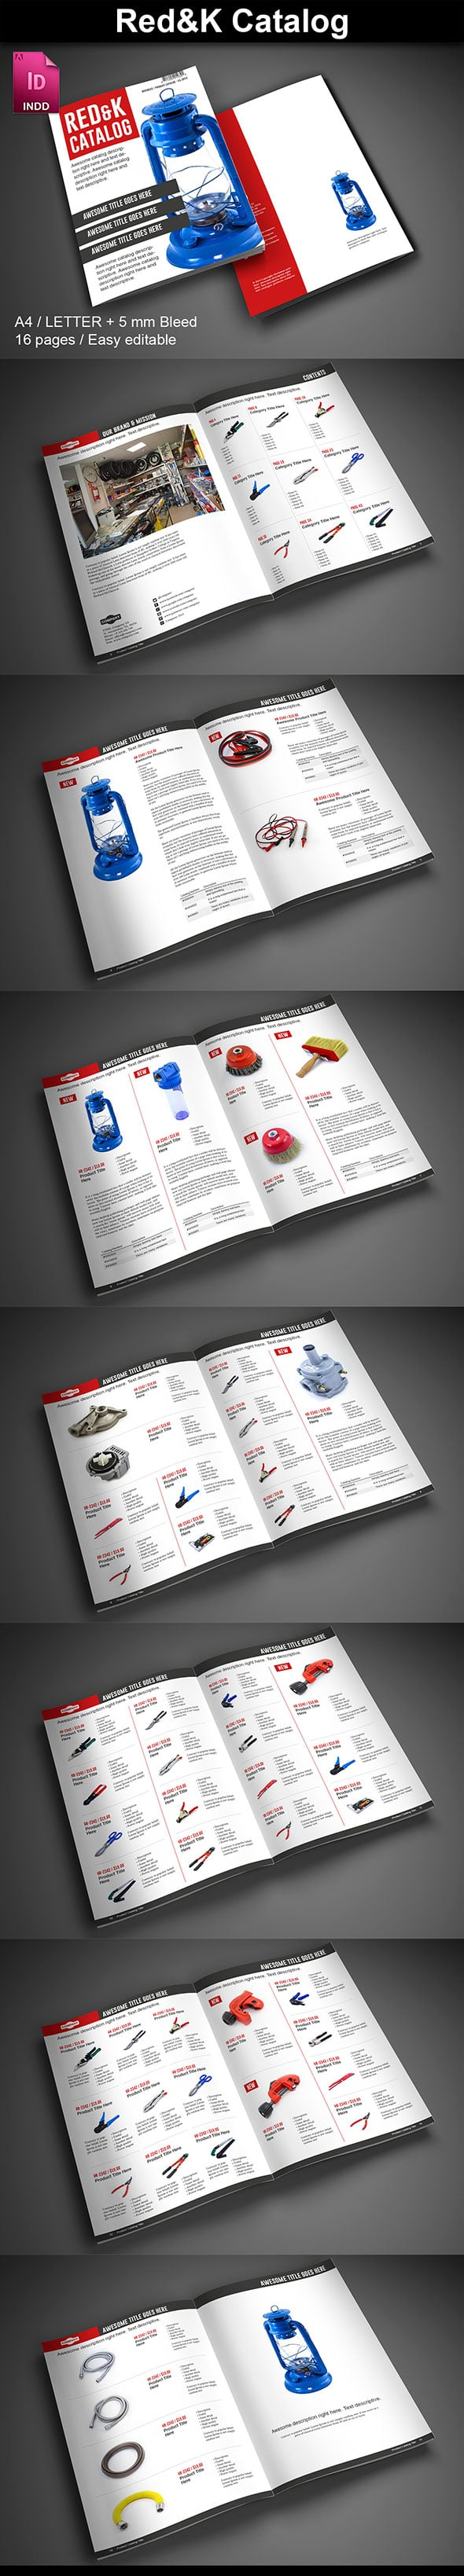 15  InDesign Product Catalogs - just $19 - 05 RedKCatalog ImagePreview2